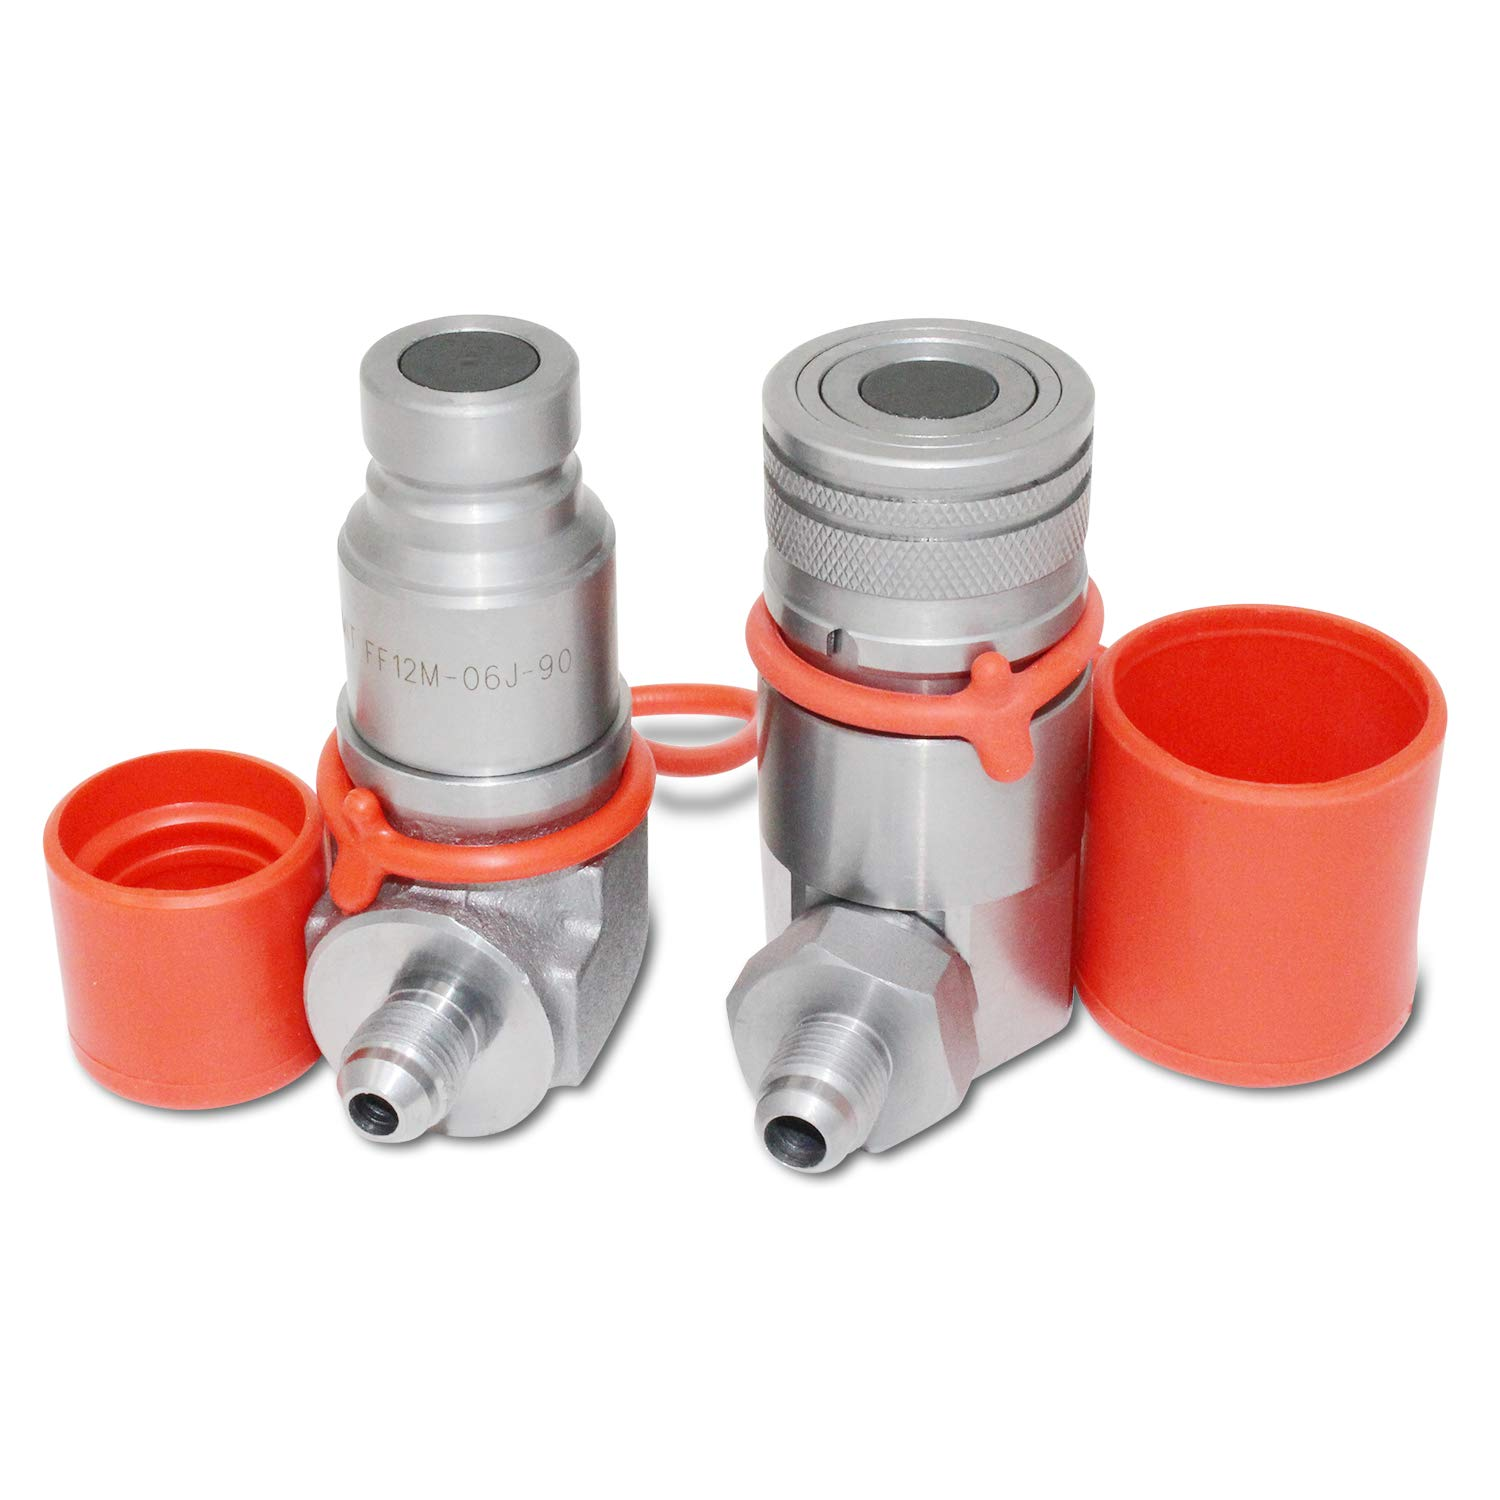 90 Degree Flat Face Skid Steer Hydraulic Quick Connect Coupler Set 3/8″ JIC Male Thread